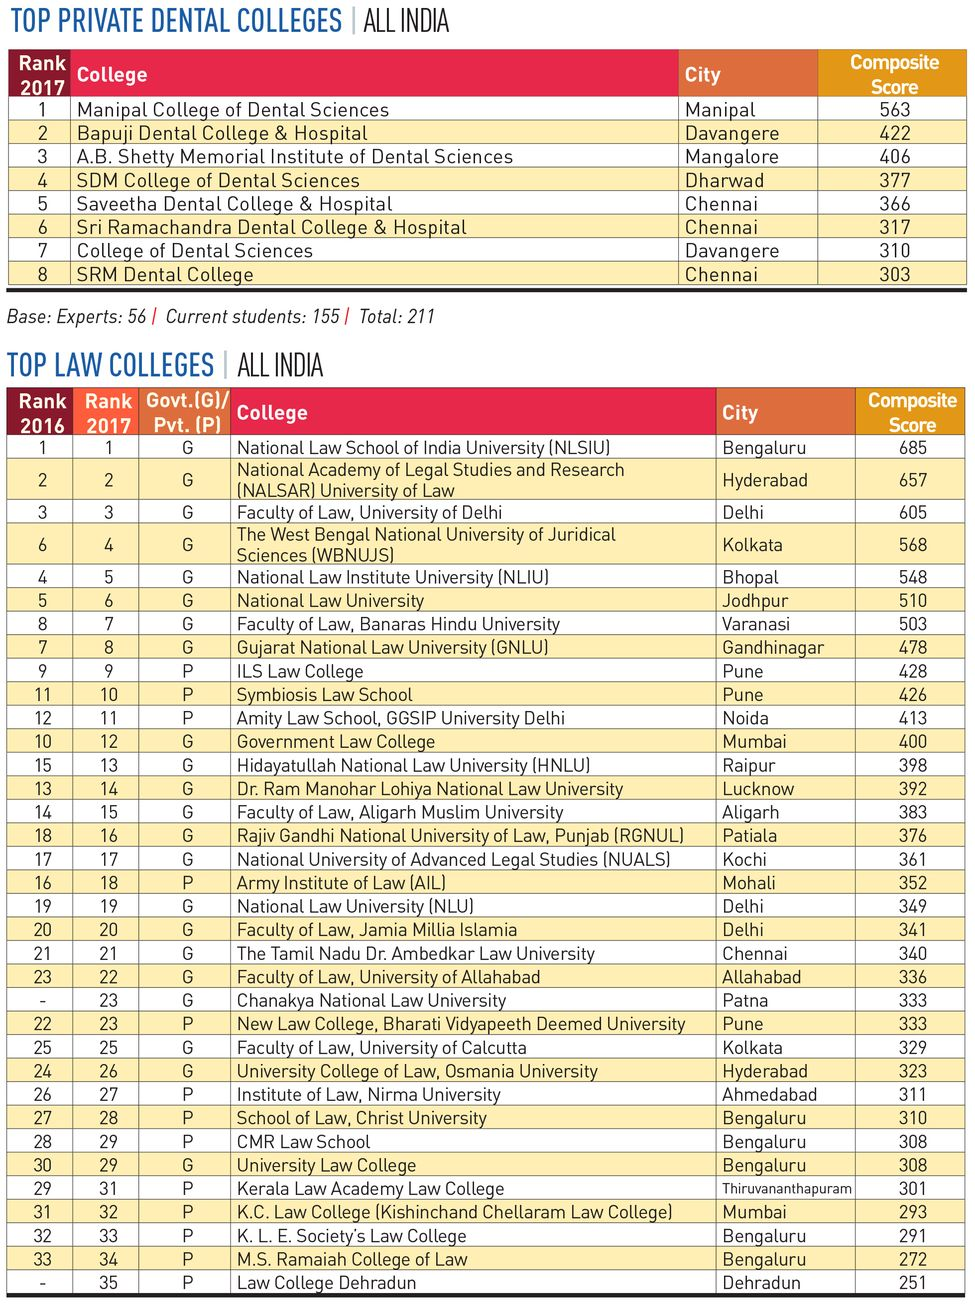 110-PRIVATE-DENTAL-COLLEGES